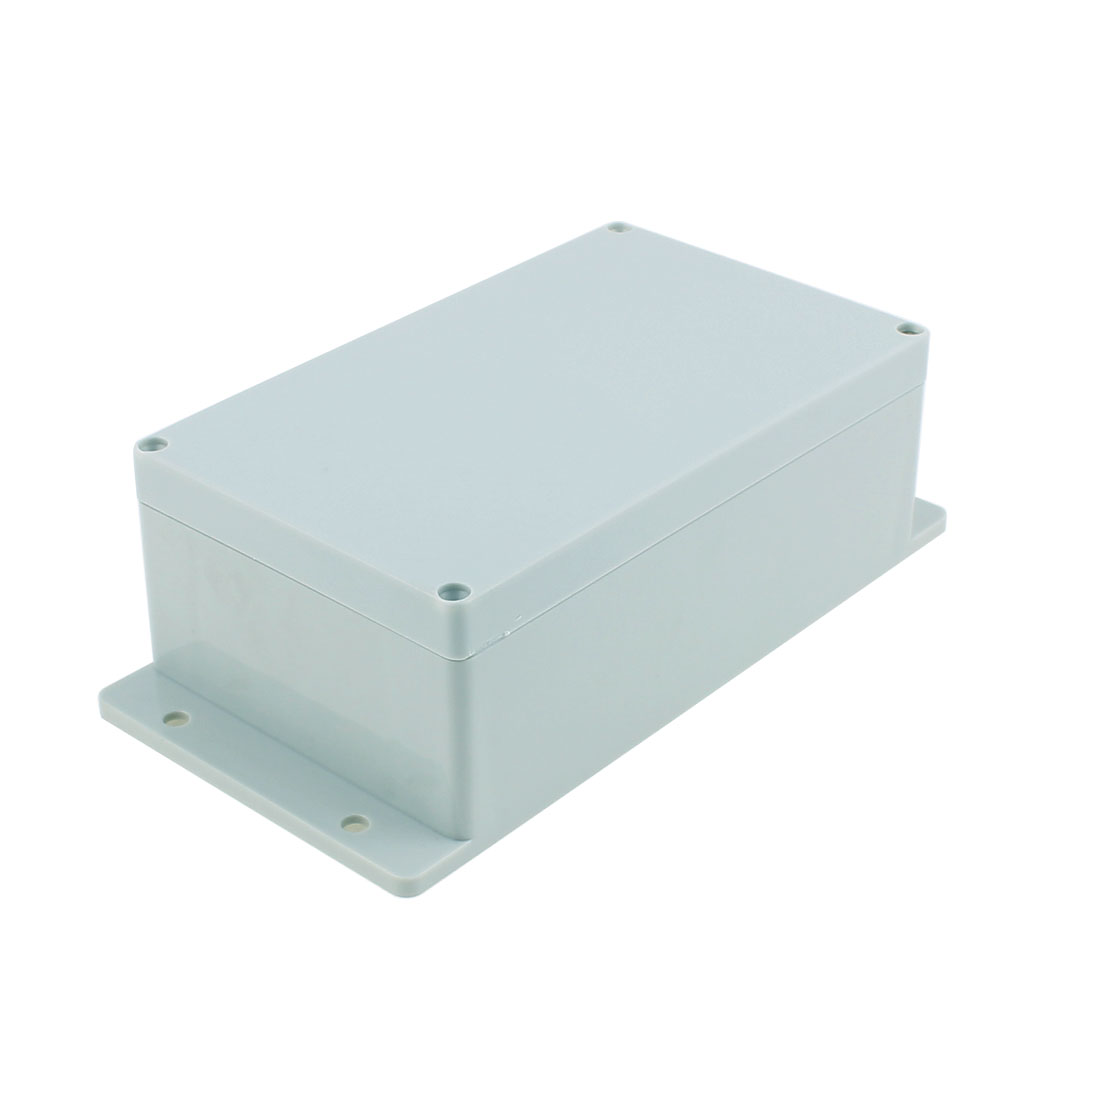 200 x 120 x 75mm Dustproof IP65 Junction Box Terminal Connection Box Enclosure